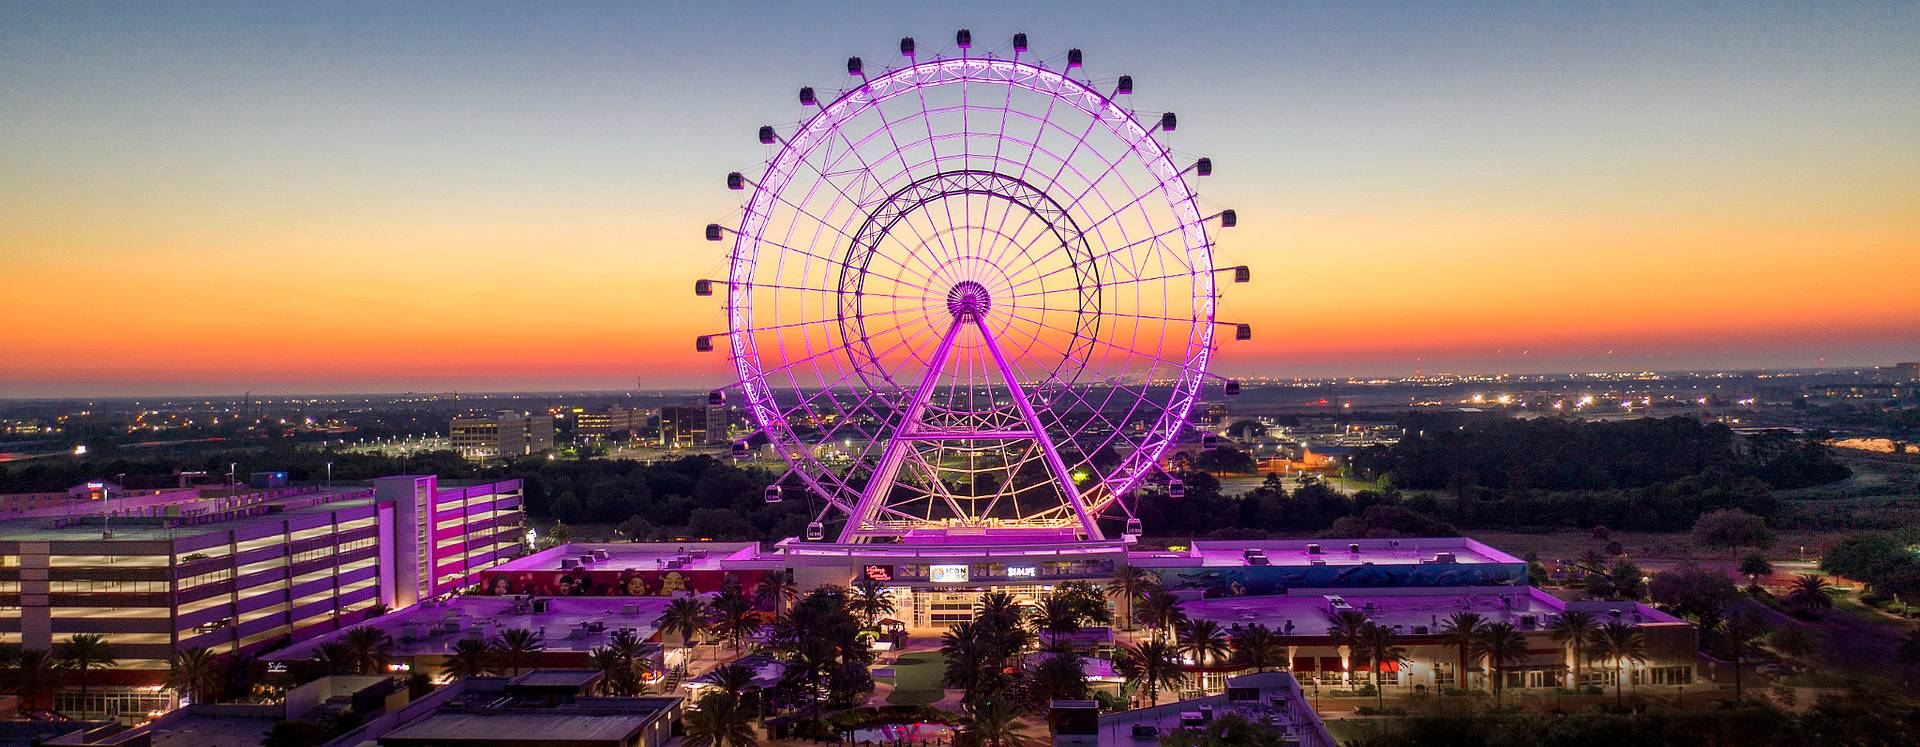 Skyline sunset view of The Wheel at ICON Park